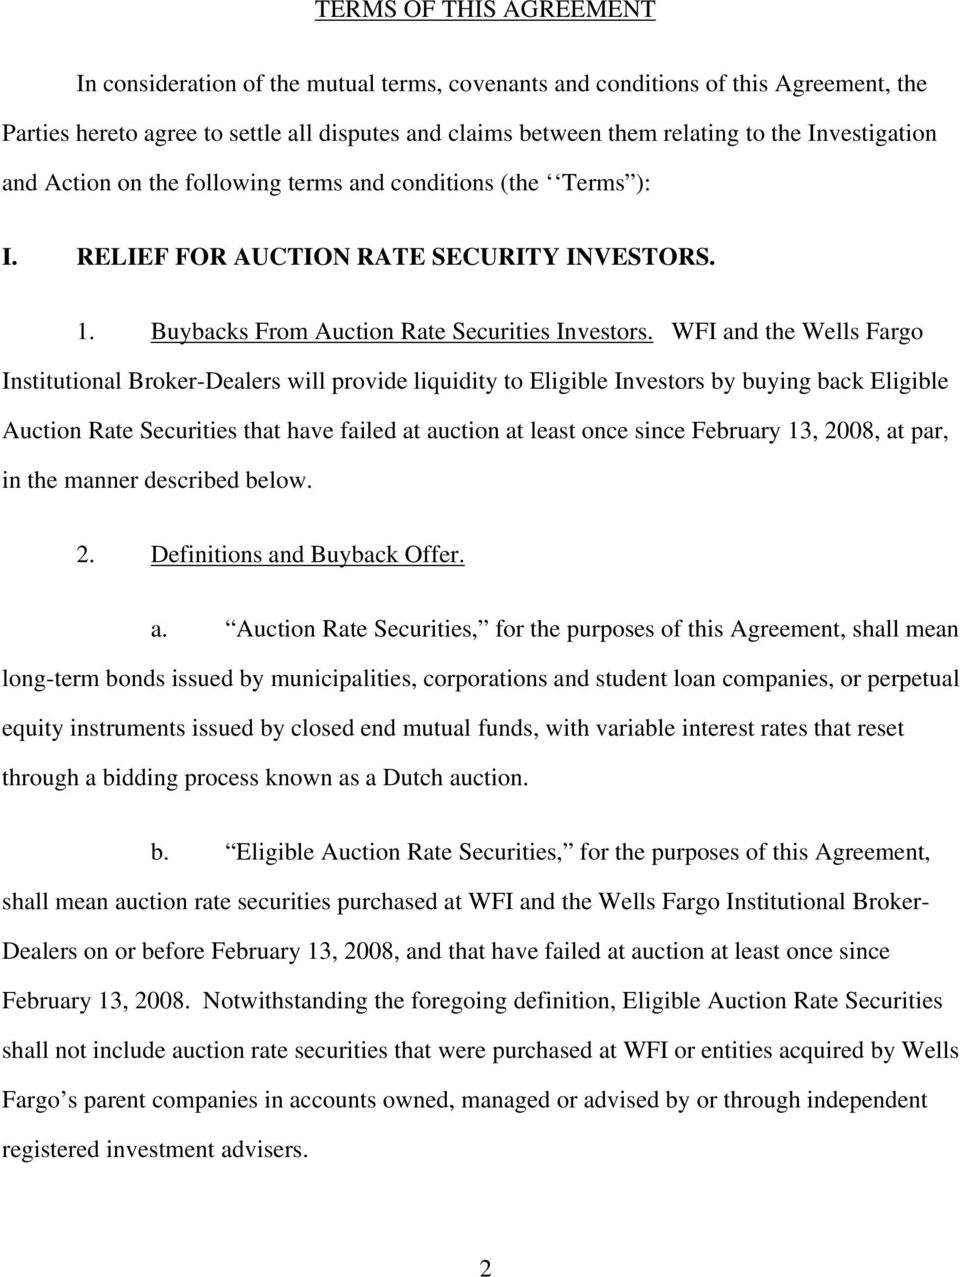 WFI and the Wells Fargo Institutional Broker-Dealers will provide liquidity to Eligible Investors by buying back Eligible Auction Rate Securities that have failed at auction at least once since